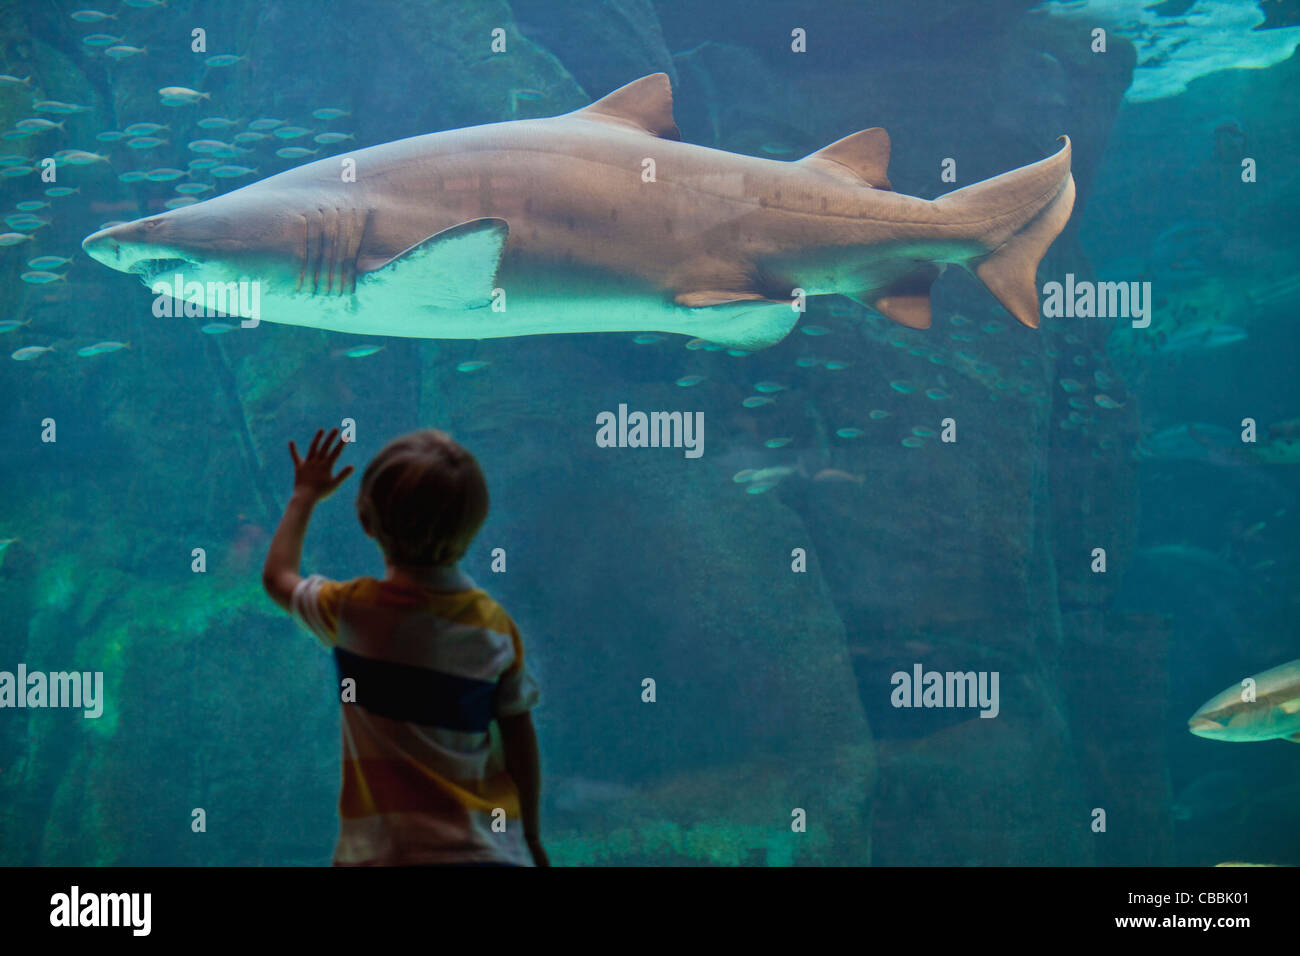 Boy admiring shark in aquarium - Stock Image